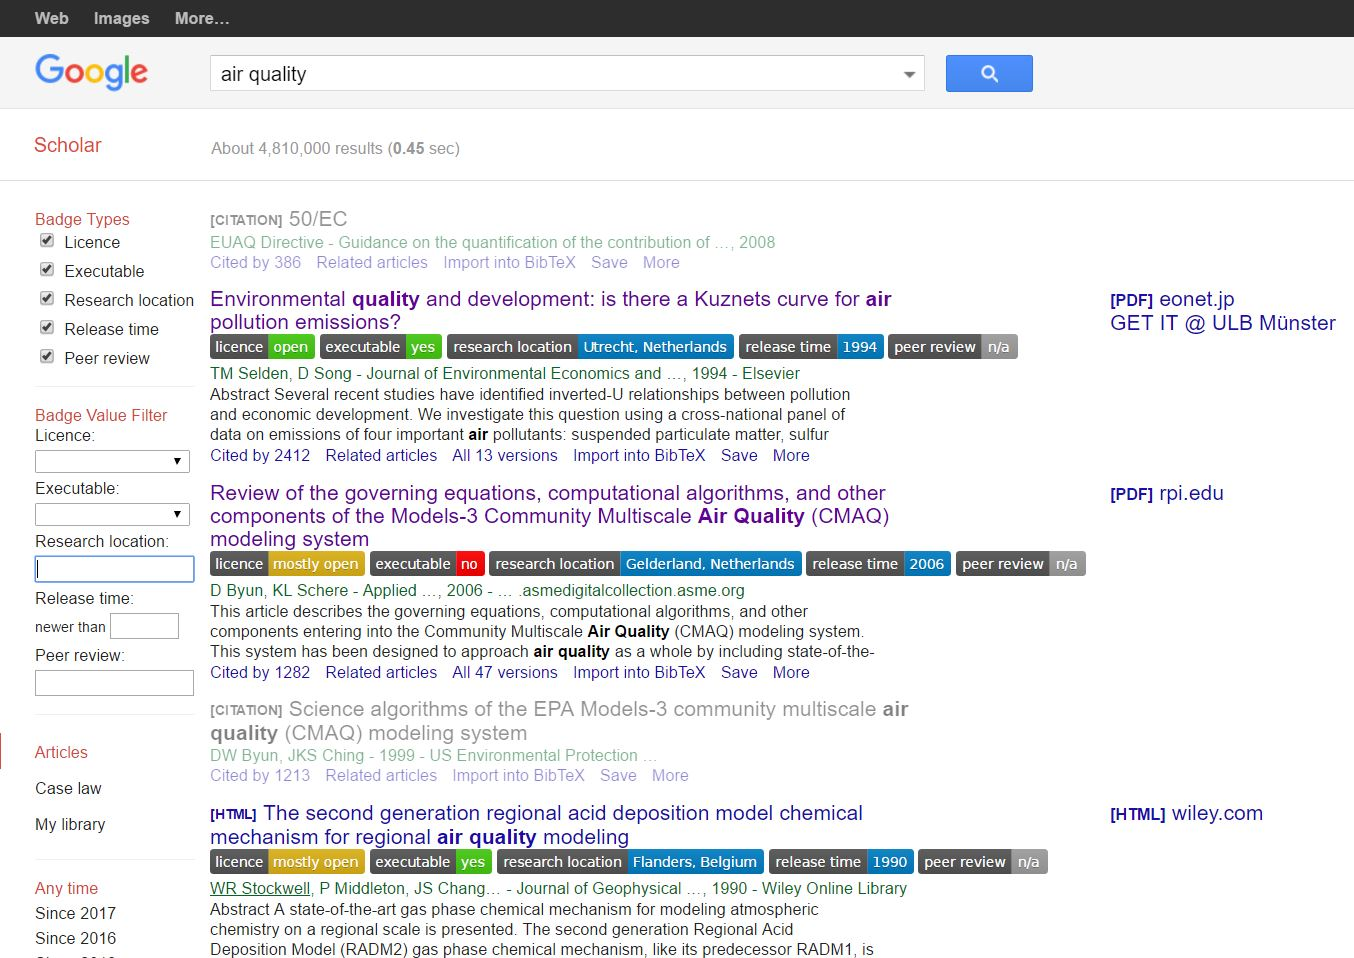 Chrome Extension Screenshots/GoogleScholar.JPG